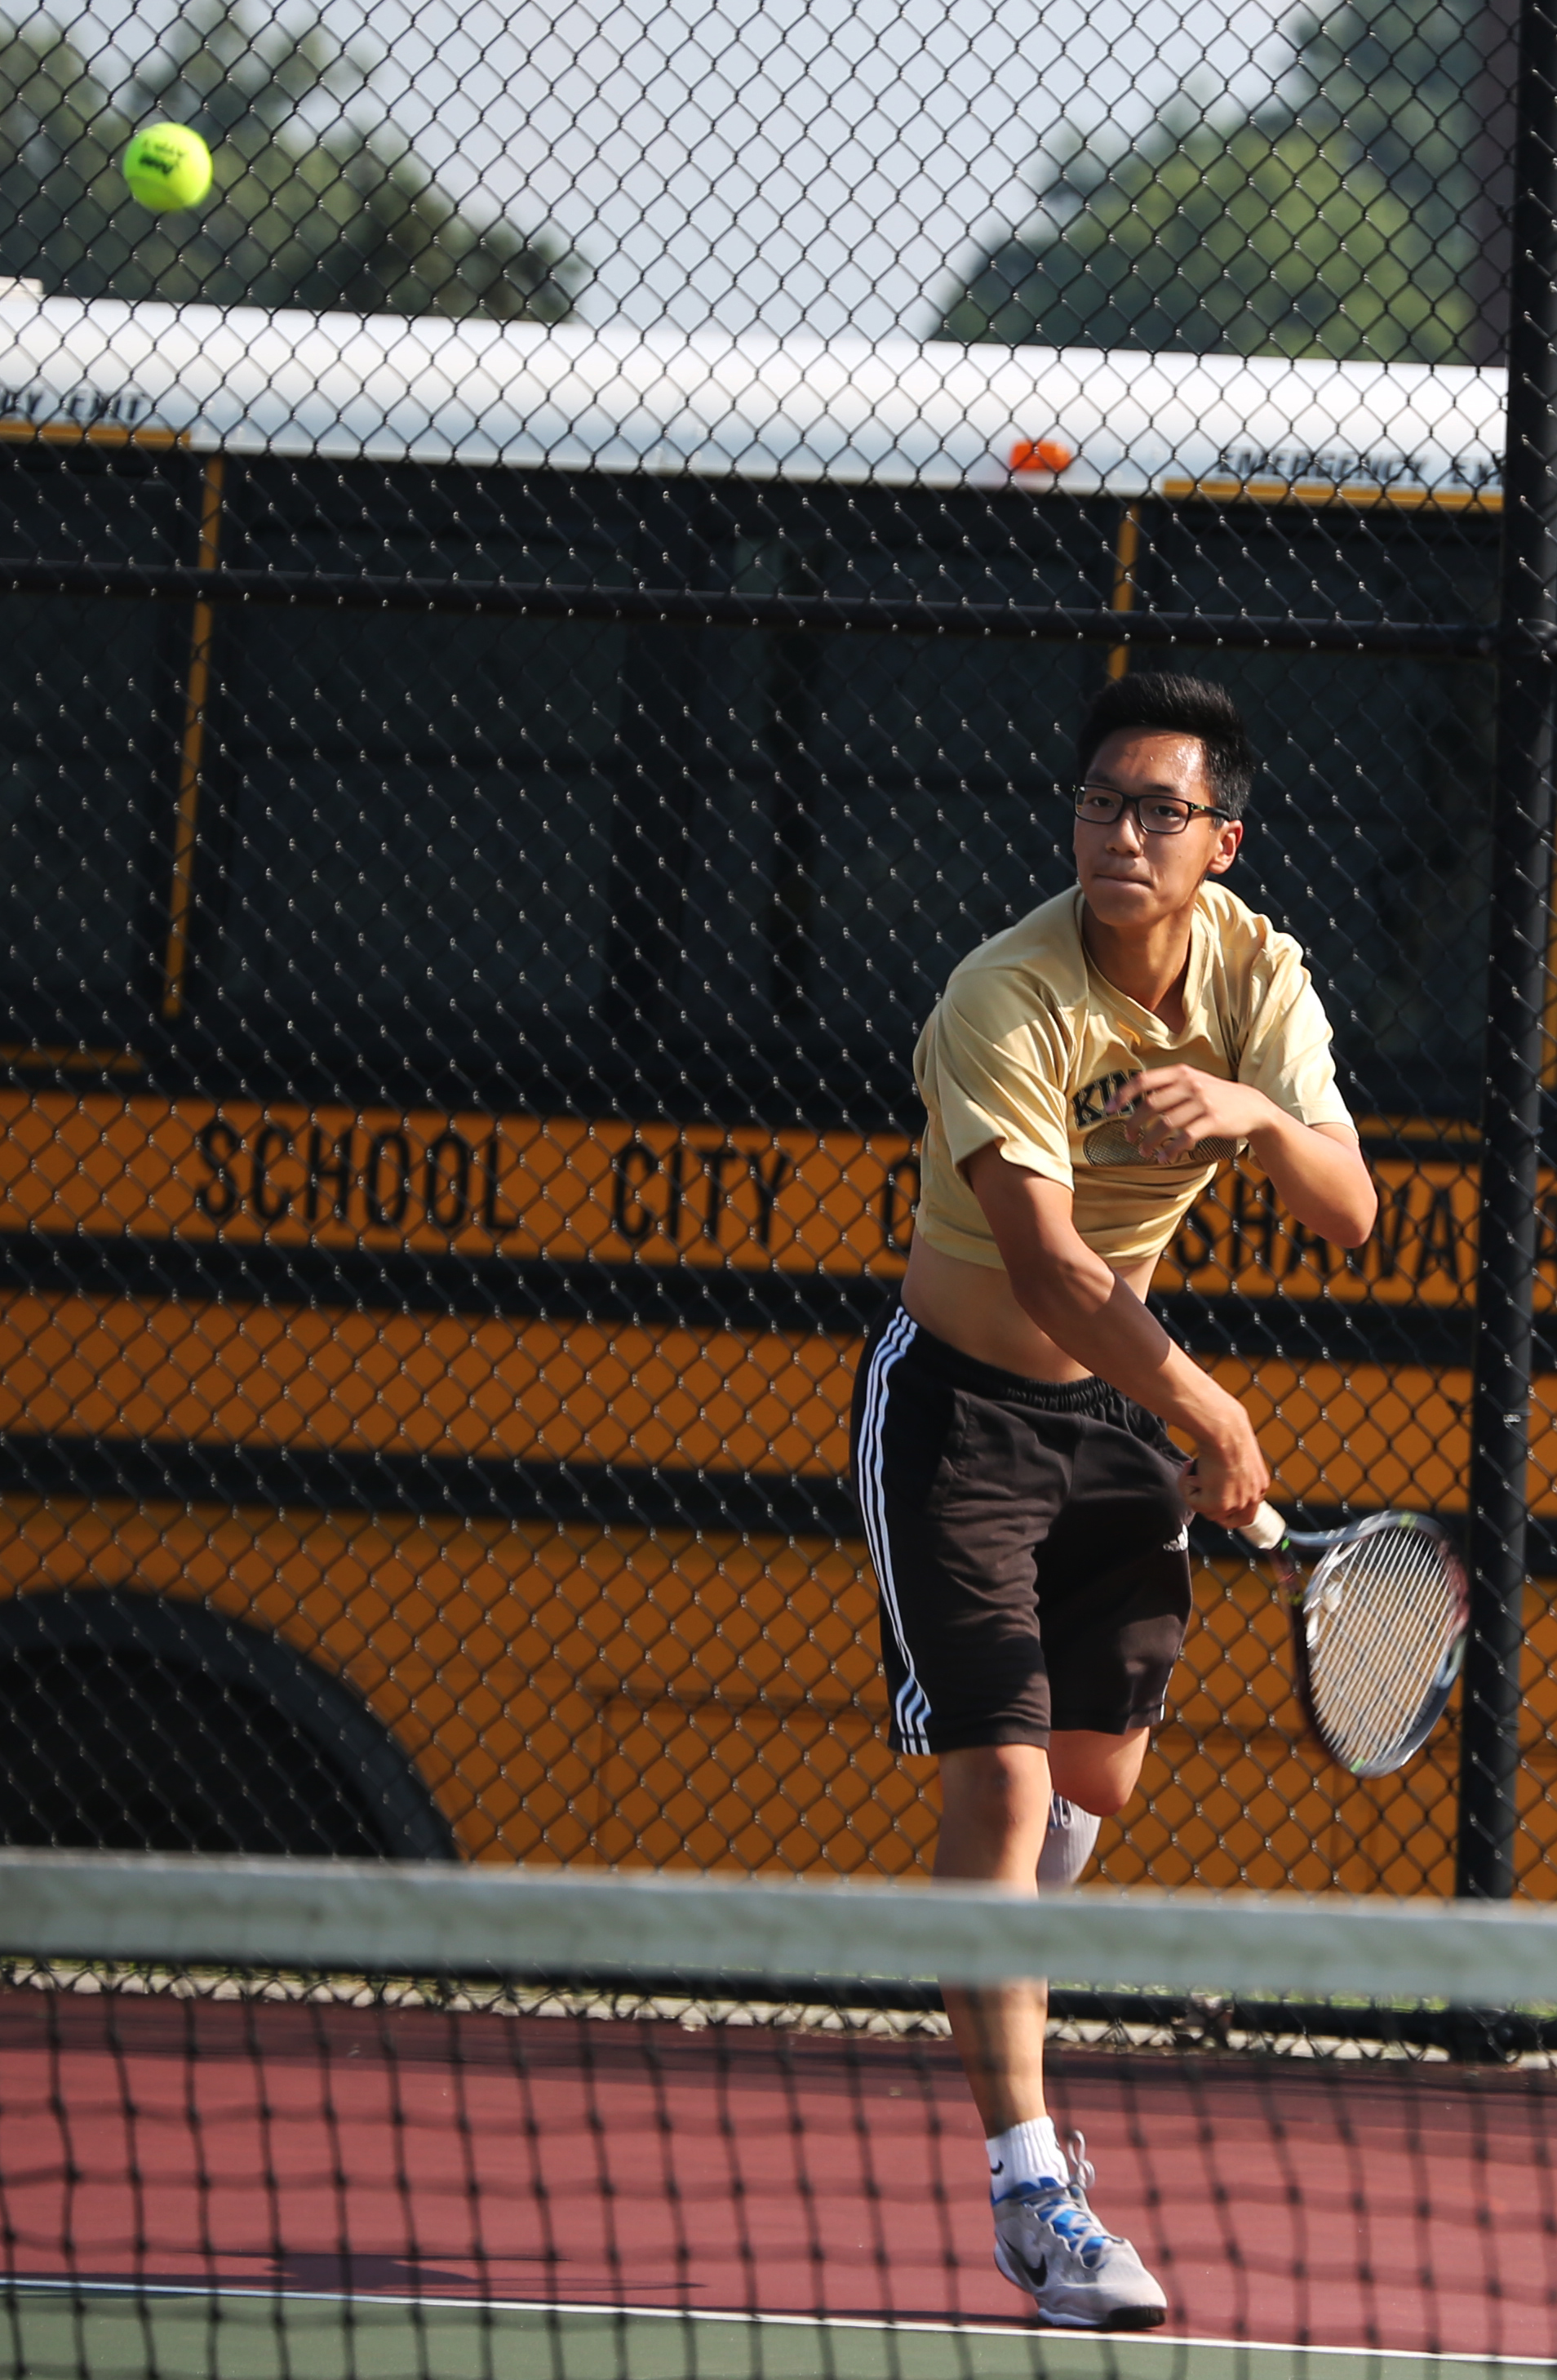 Penn Tennis Vs Mishawaka Photo Gallery Penn High School